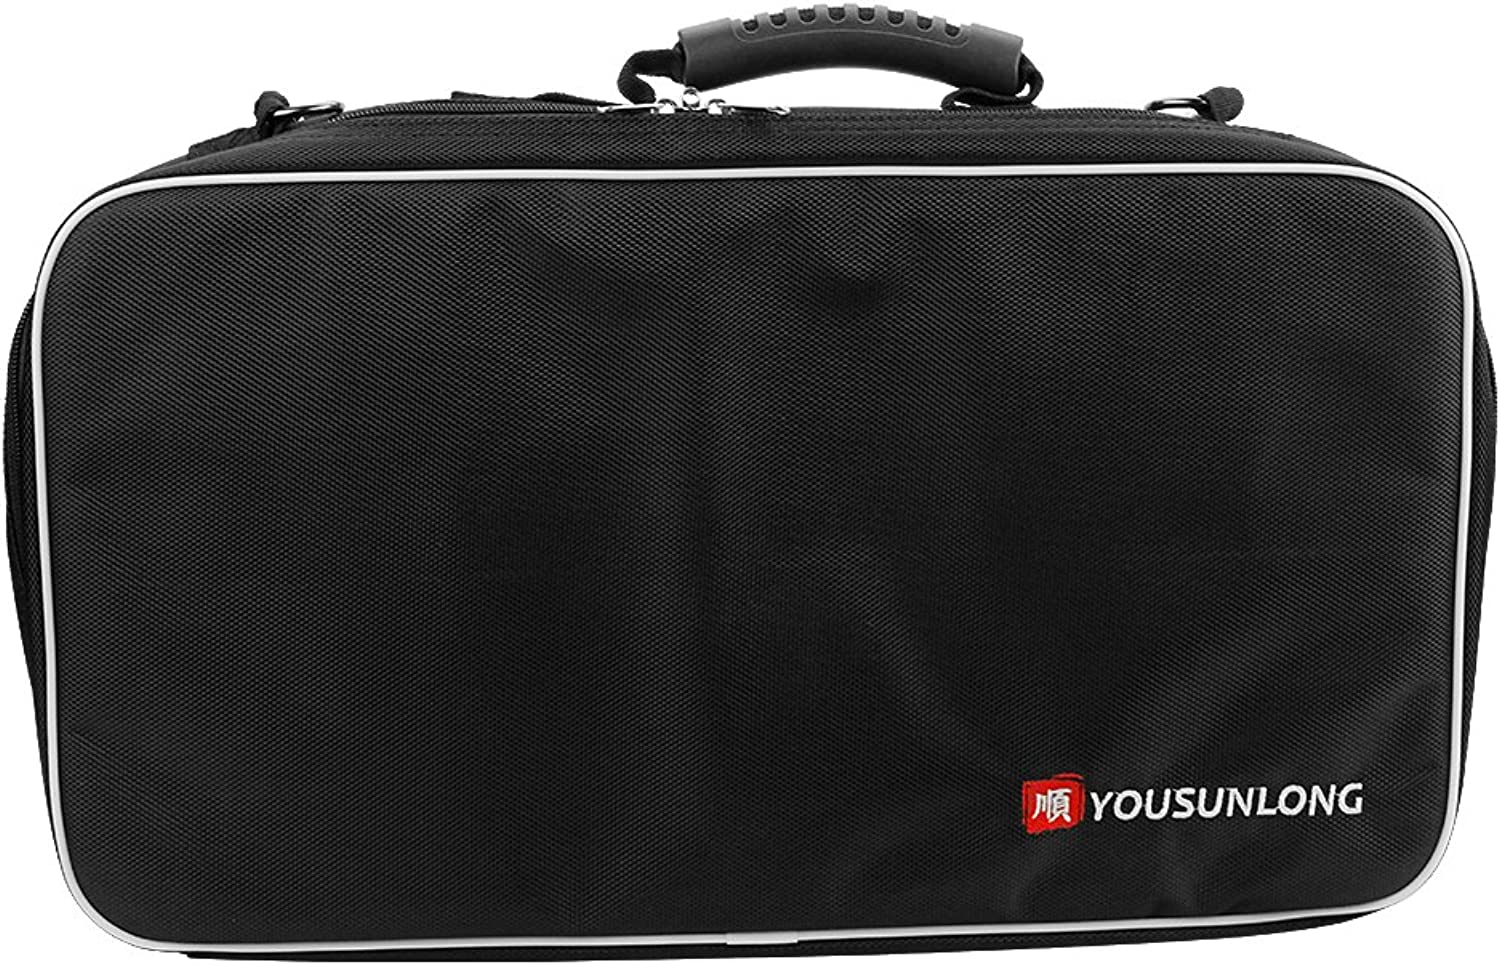 YOUSUNLONG Knife Bag for Chefs Premium Culinary Knife Bag Knives Predector w 21 Pockets & 3 Zipper Compartments